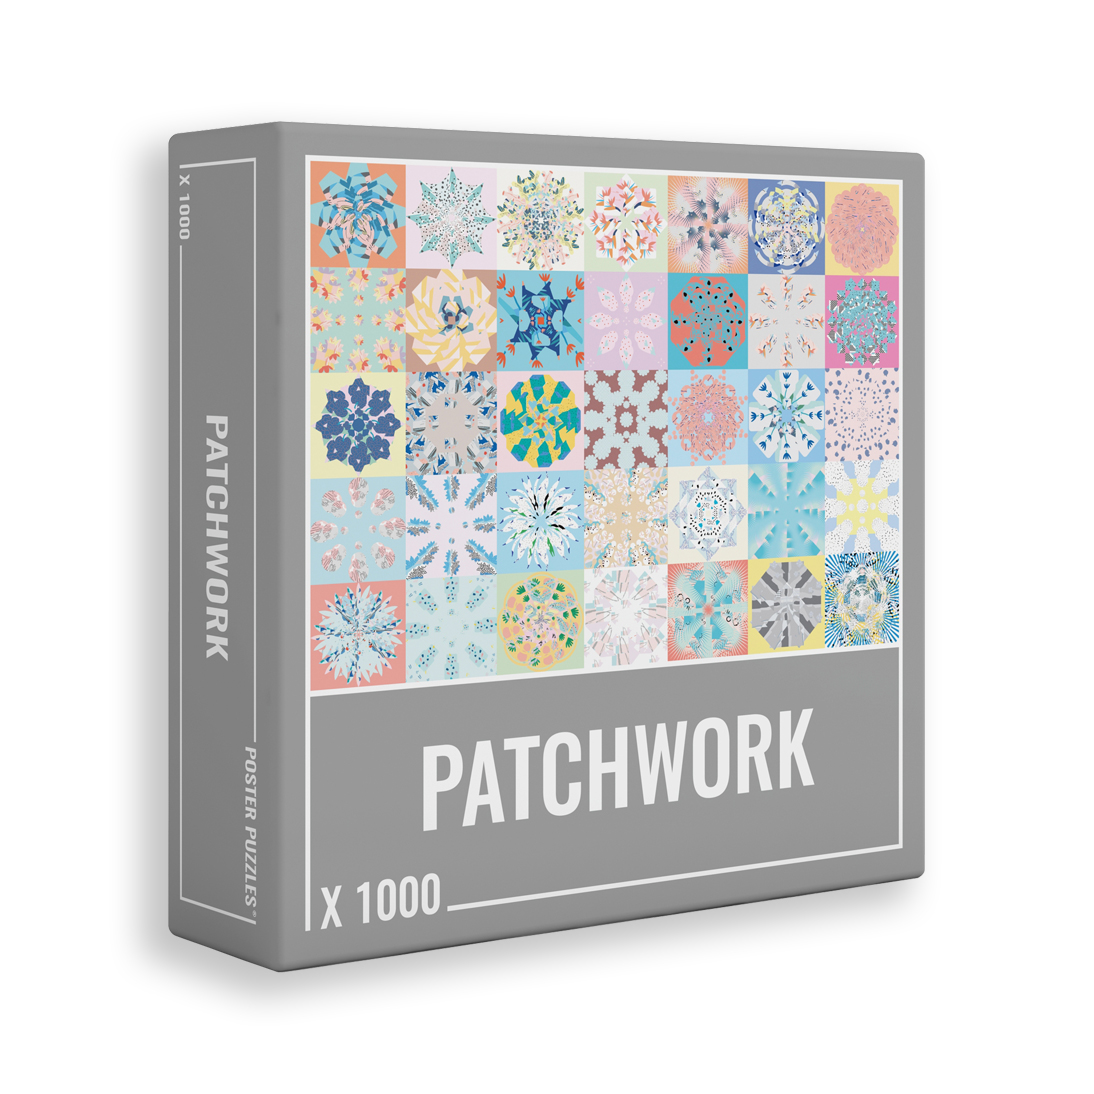 Patchwork 1000-piece jigsaw puzzle by Cloudberries